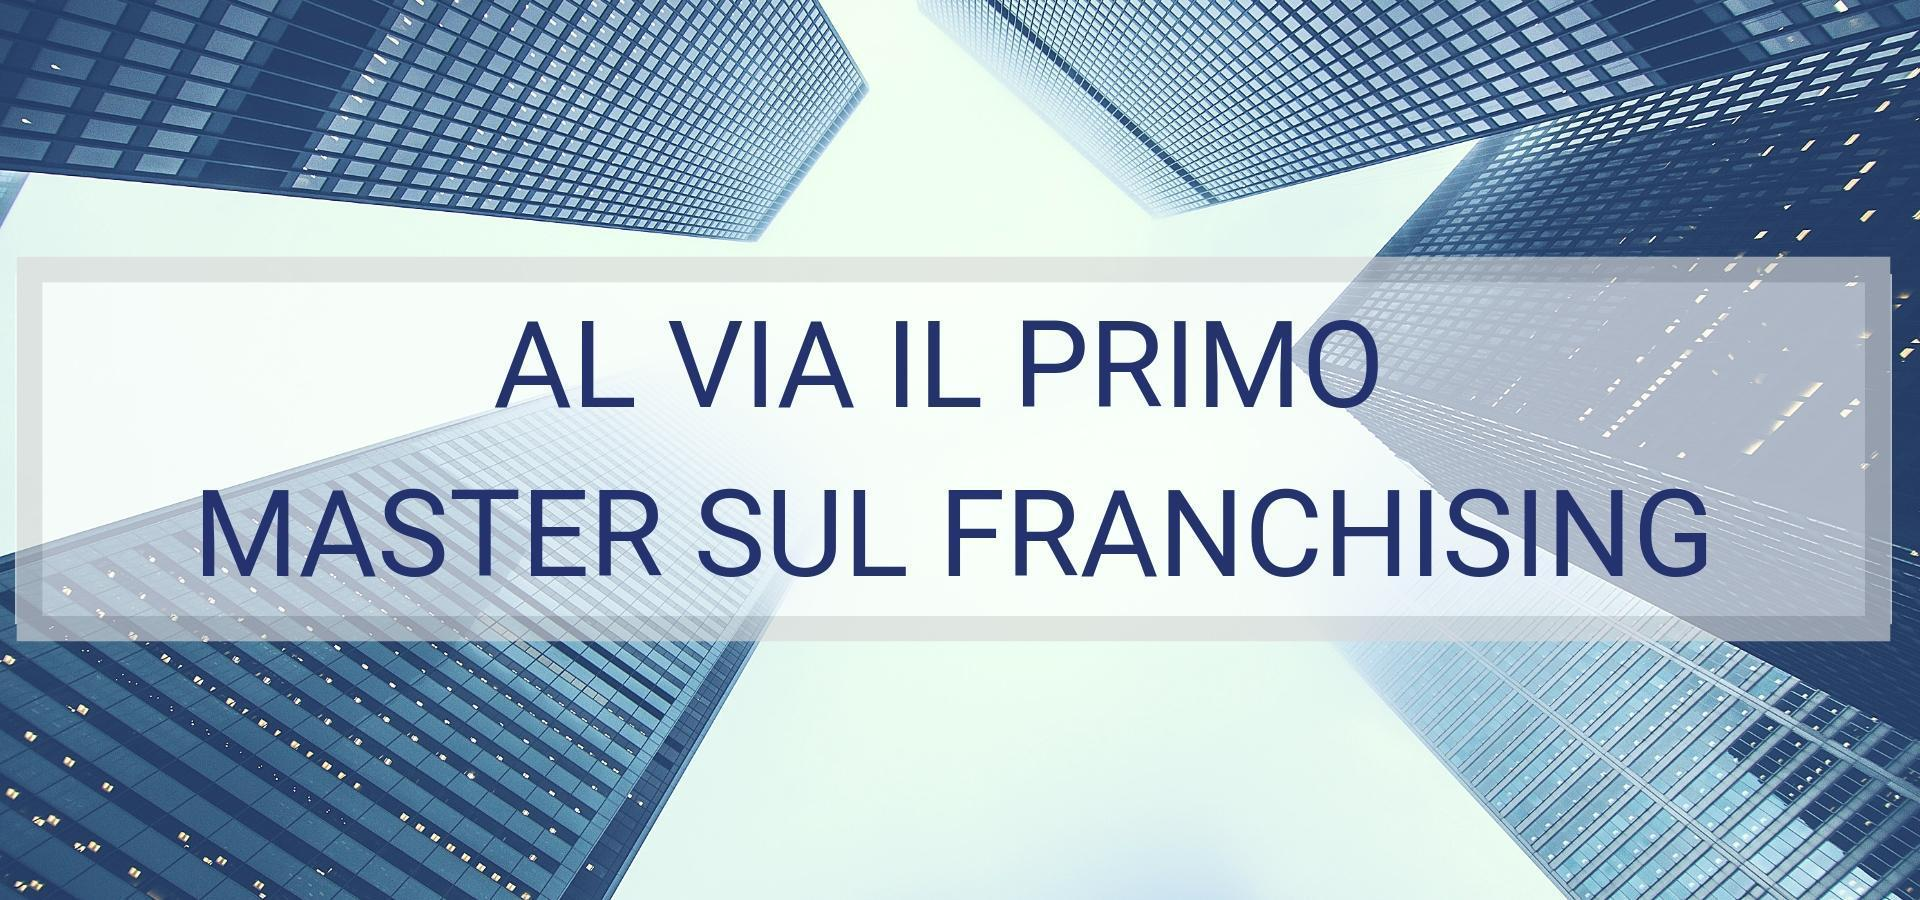 Al-via-il-primo-Master-universitario-sul-franchising